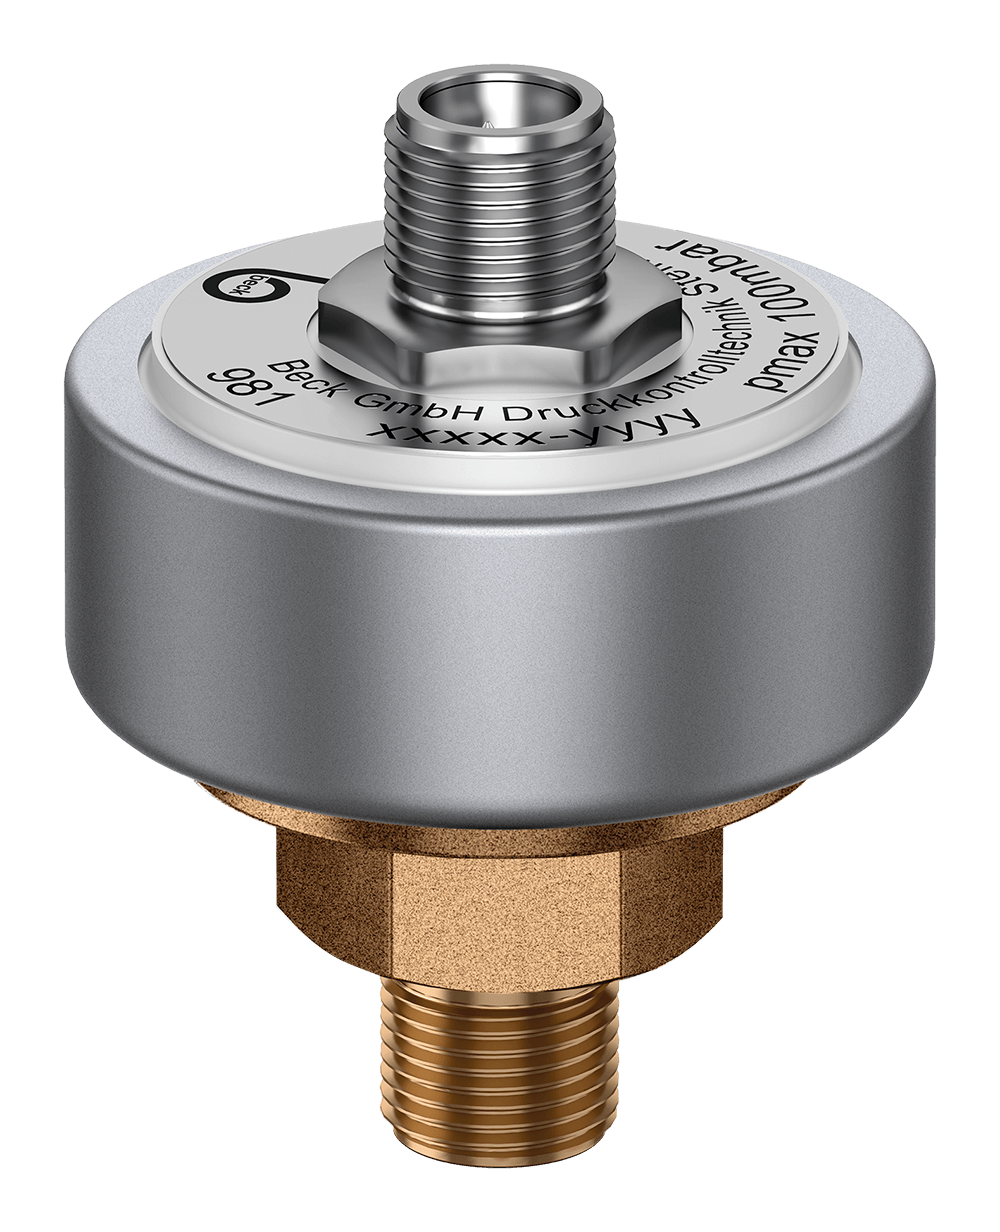 Pressure Transmitter 981 with brass pressure connection